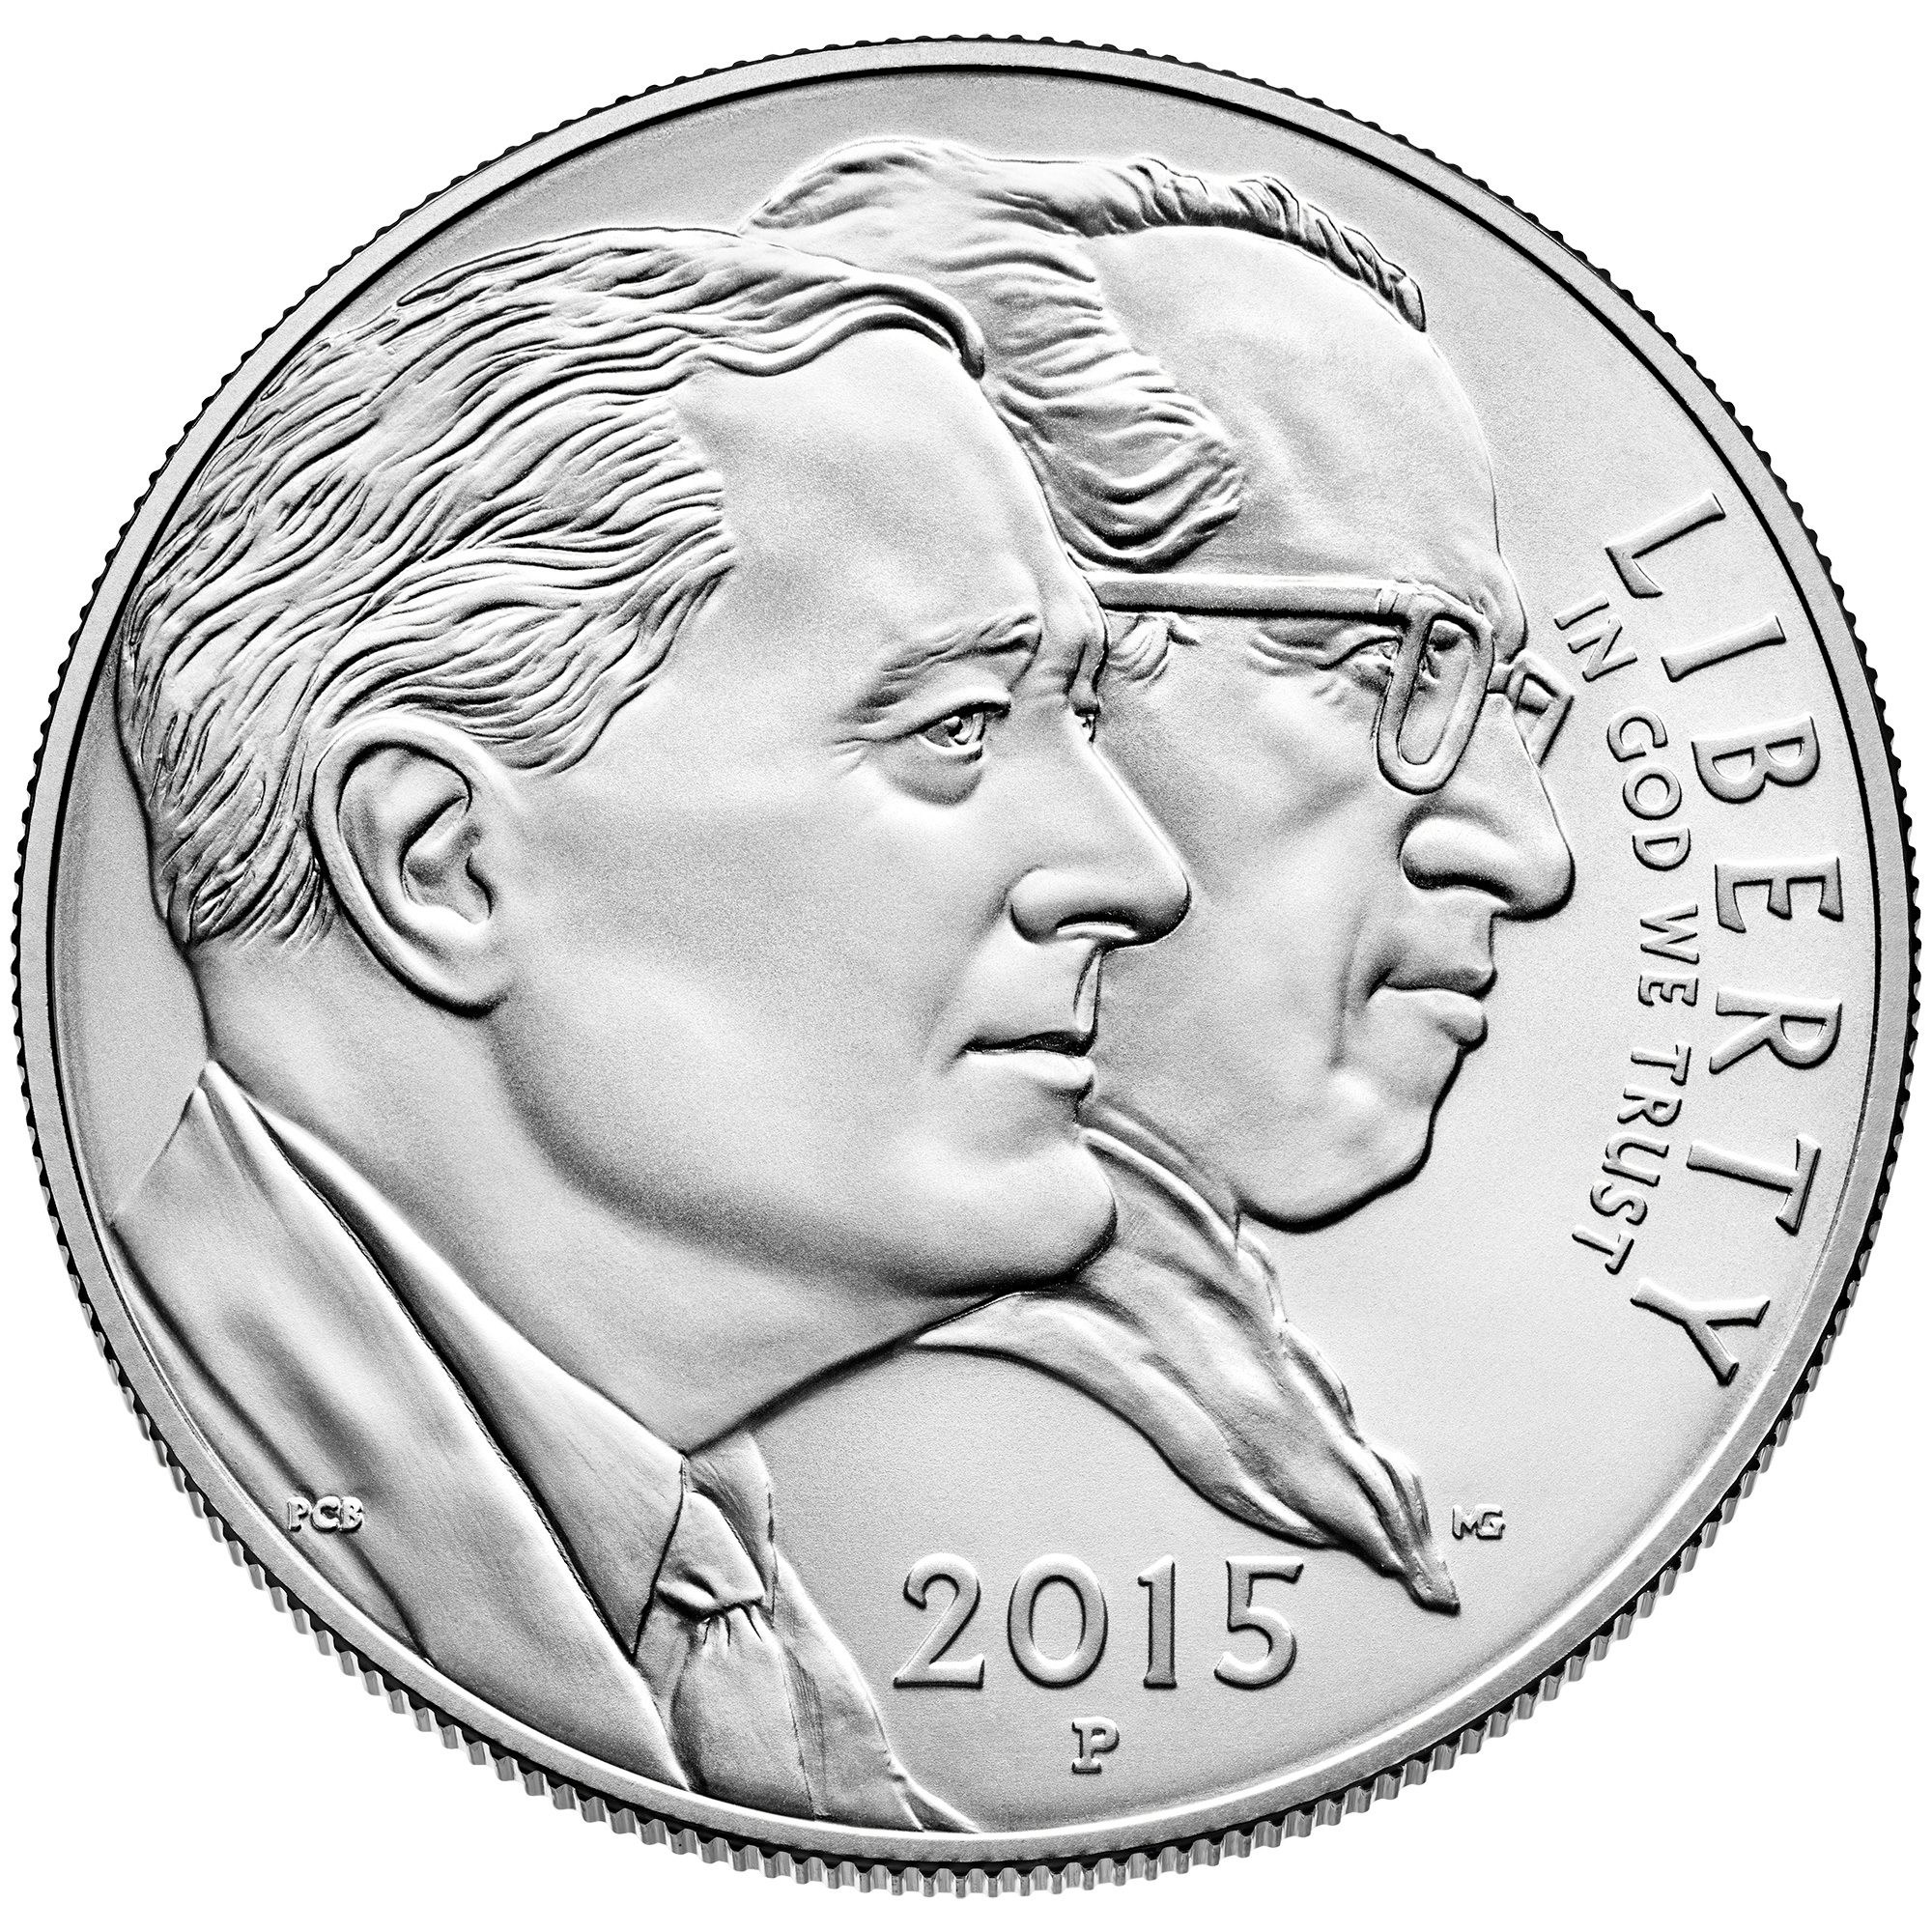 2015 March Of Dimes Commemorative Silver One Dollar Uncirculated Obverse